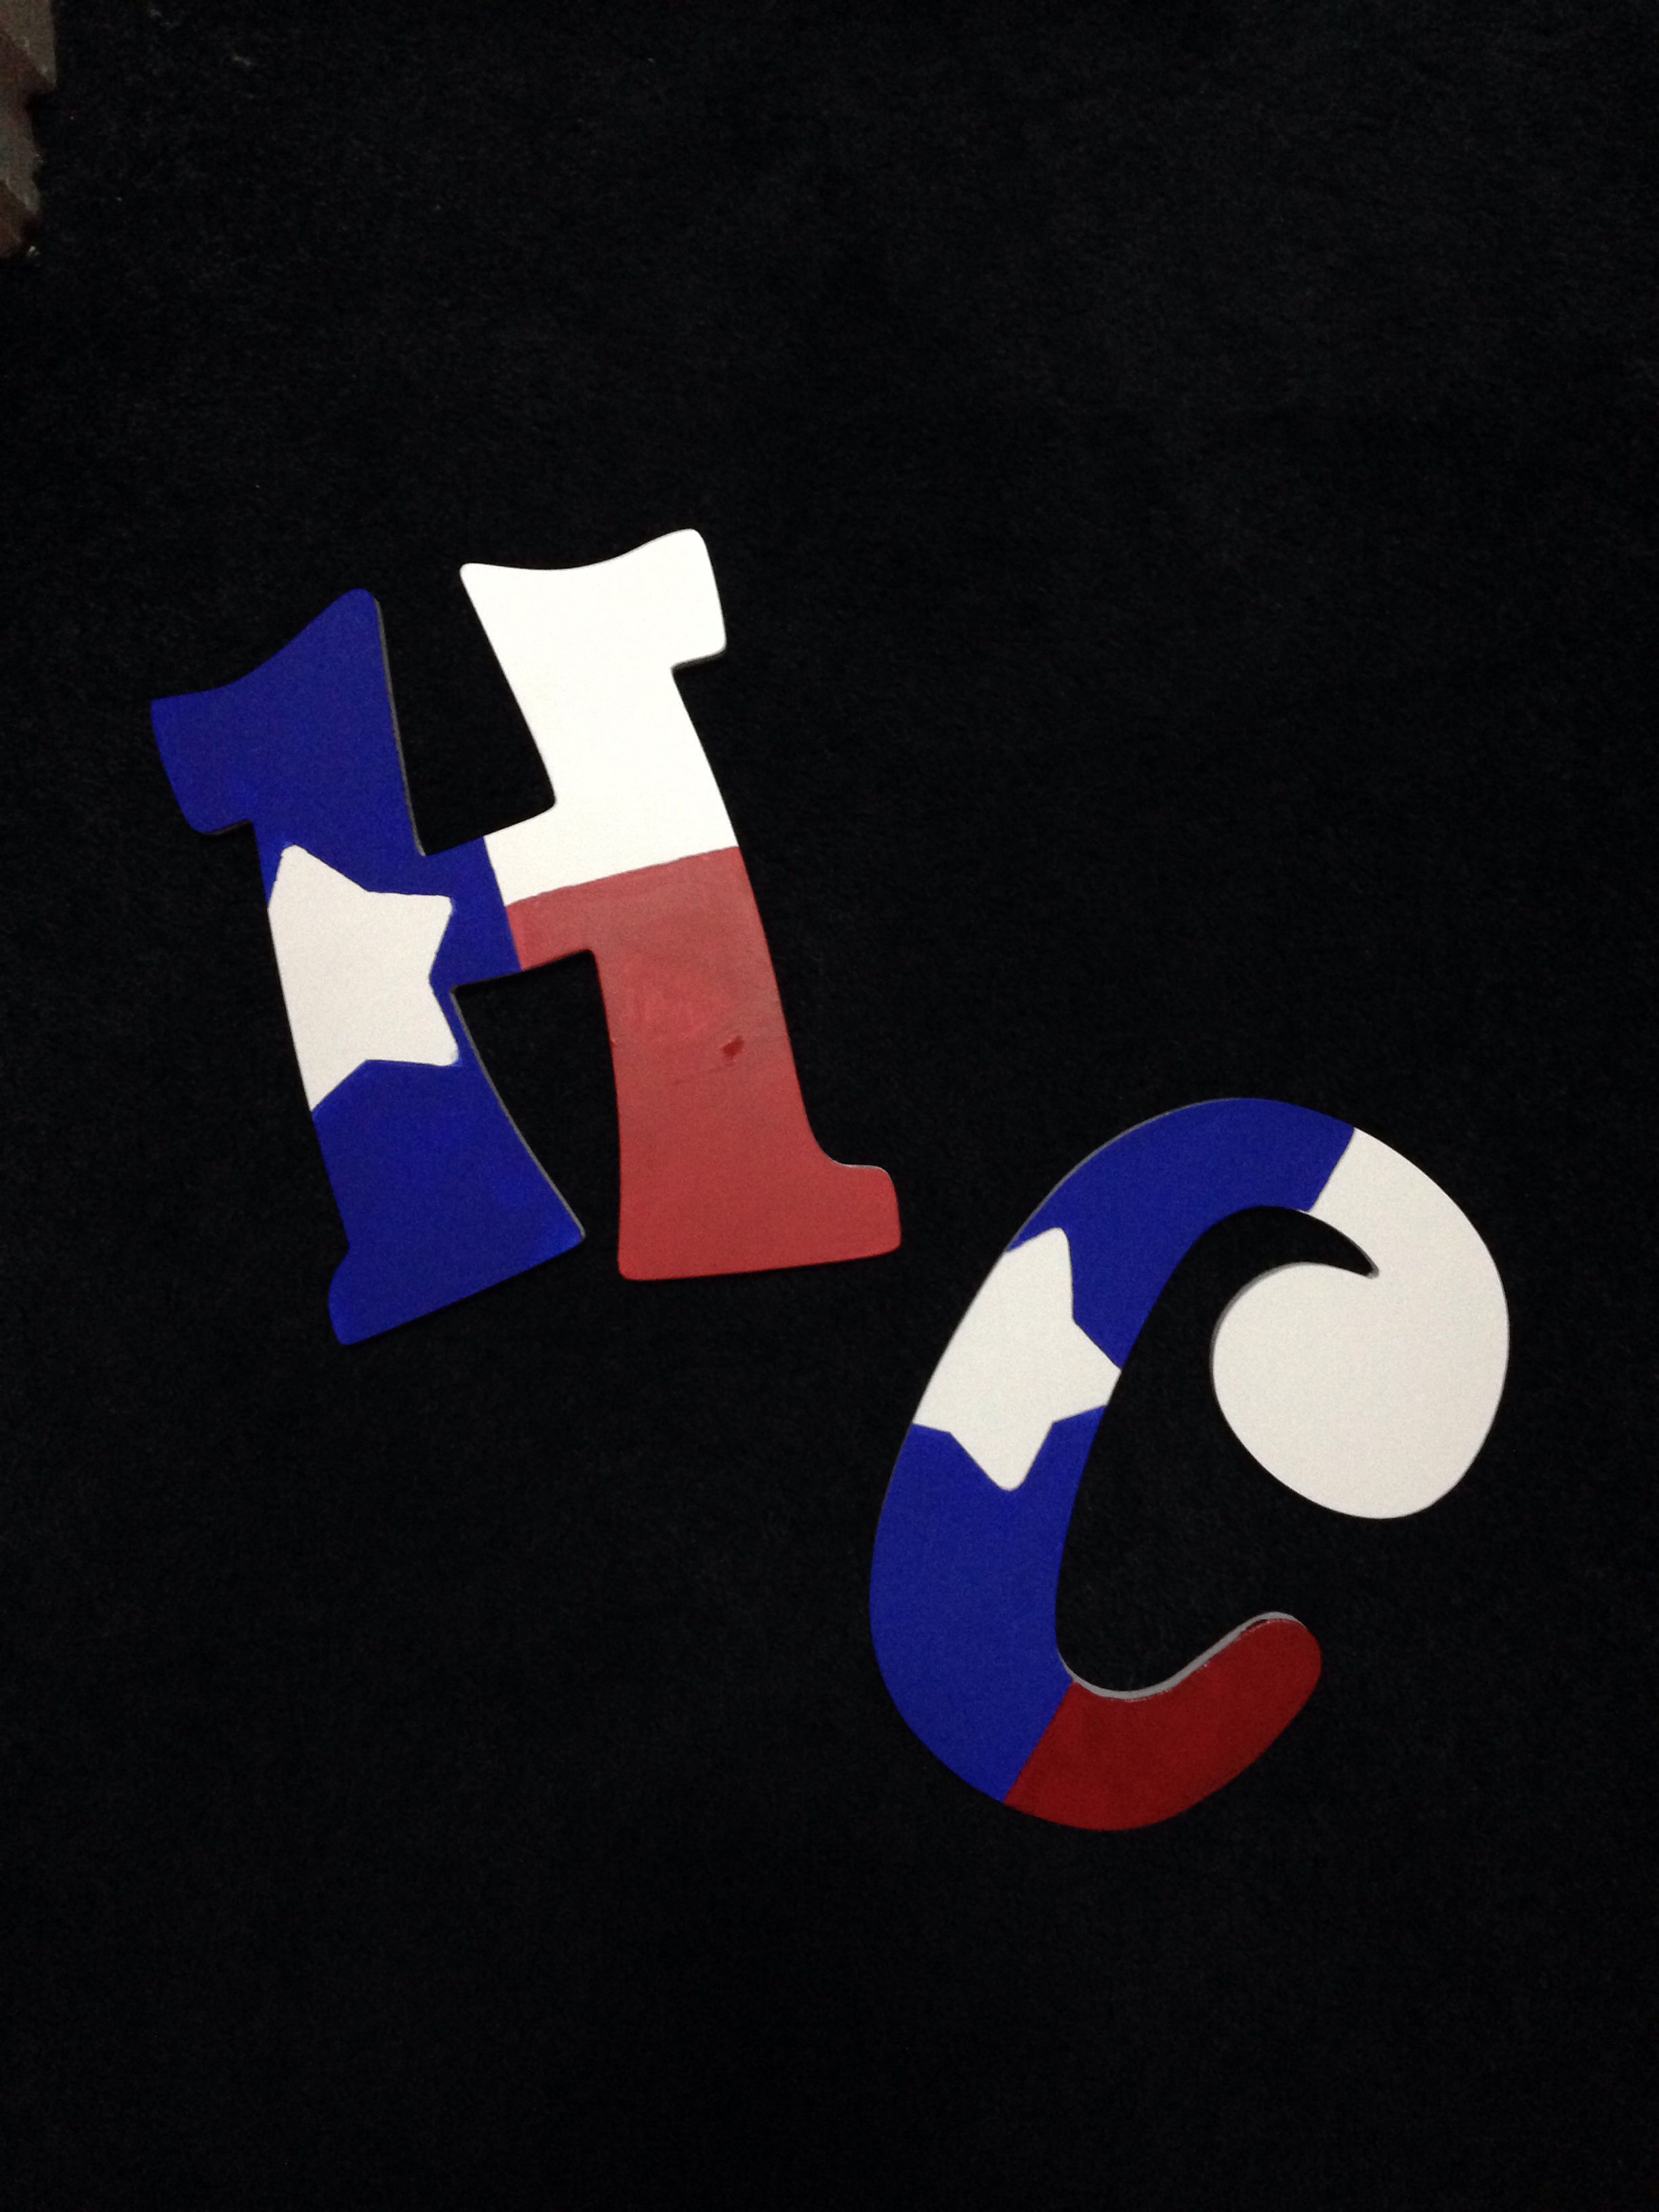 Texas letters Letters, Company logo, Crafty